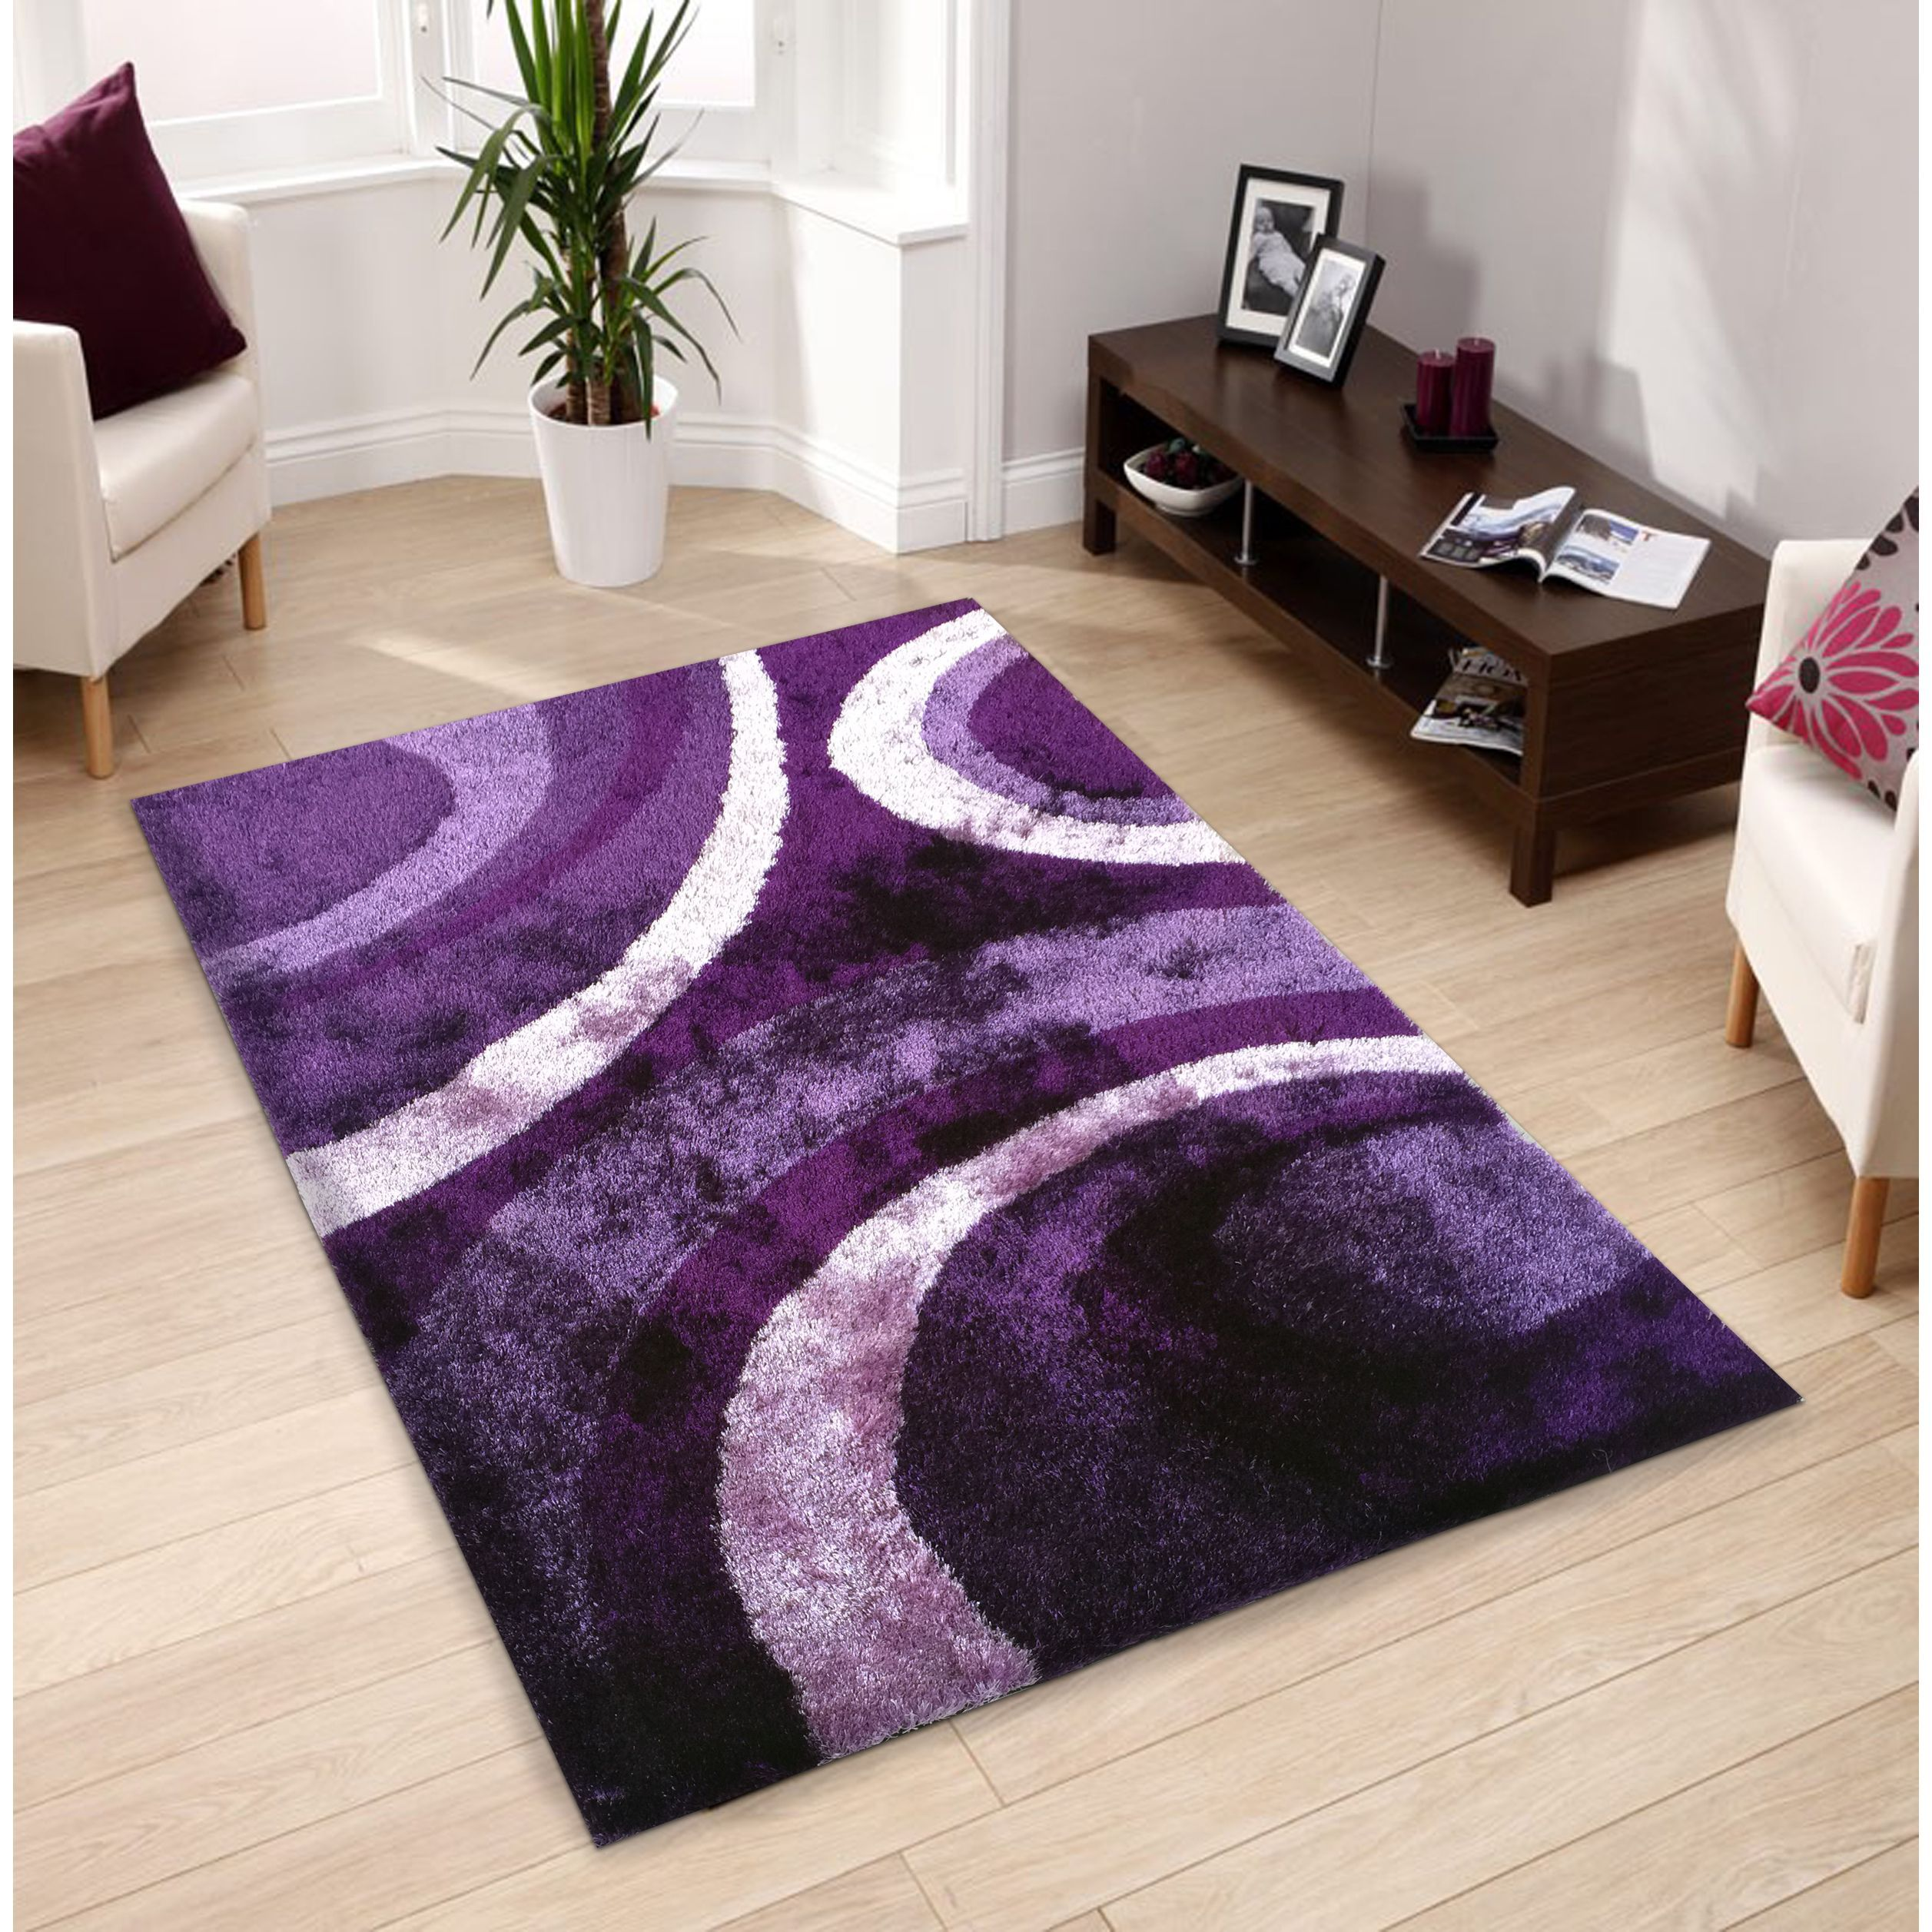 Hand-tufted Purple Shag Area Rug (5' X 7') (Purple), Size